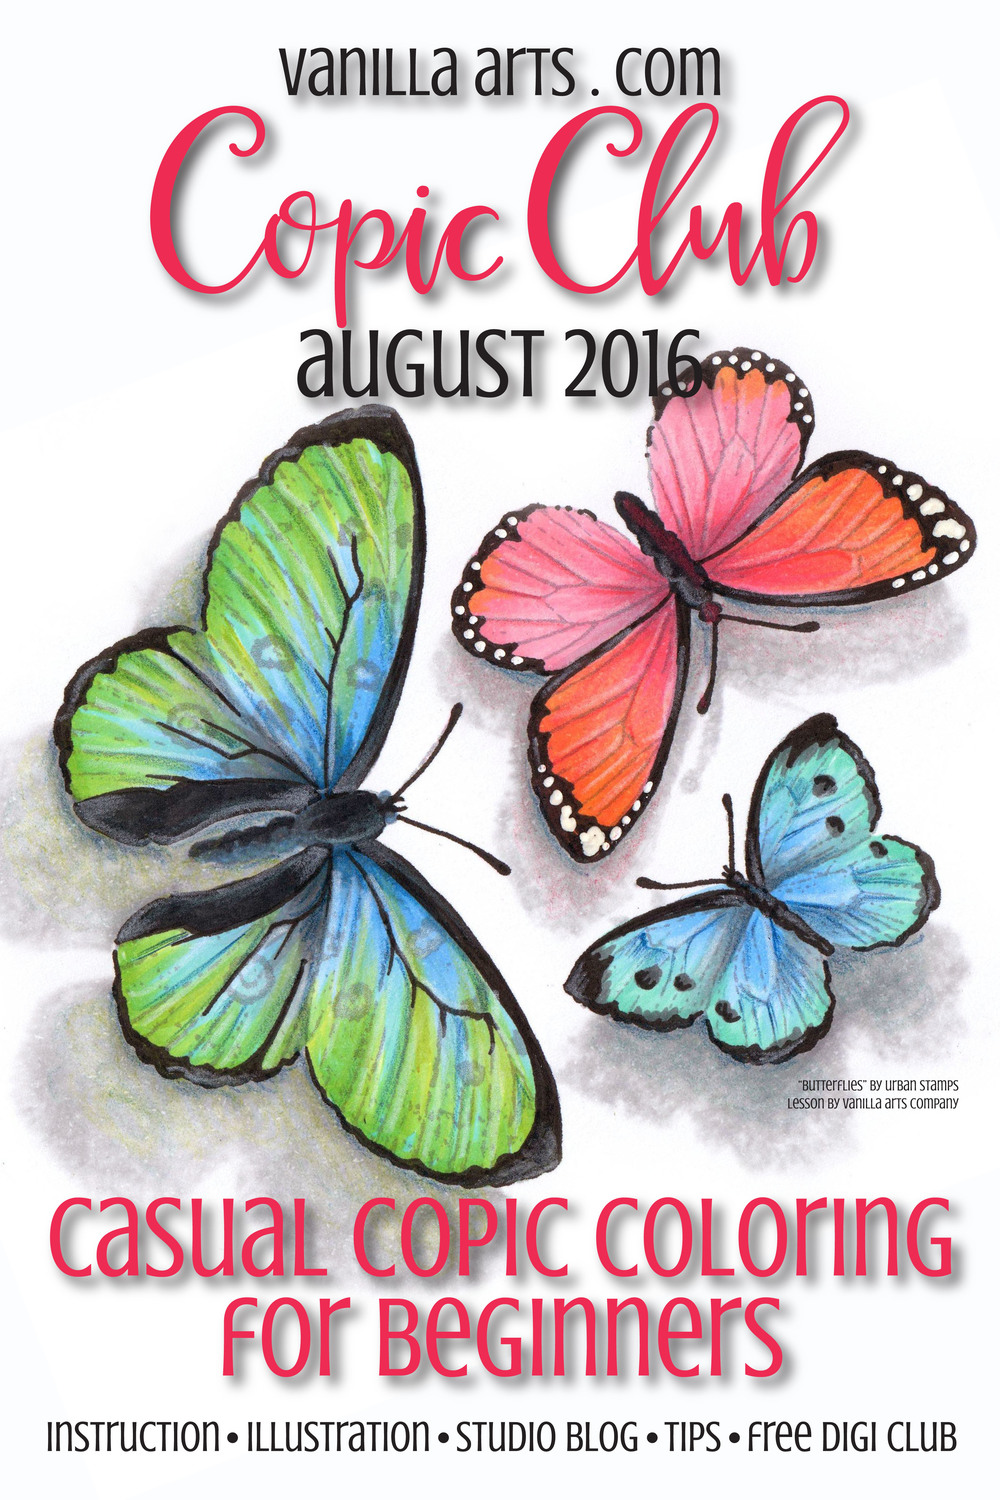 Beginner level casual Copic coloring lessons | VanillaArts.com